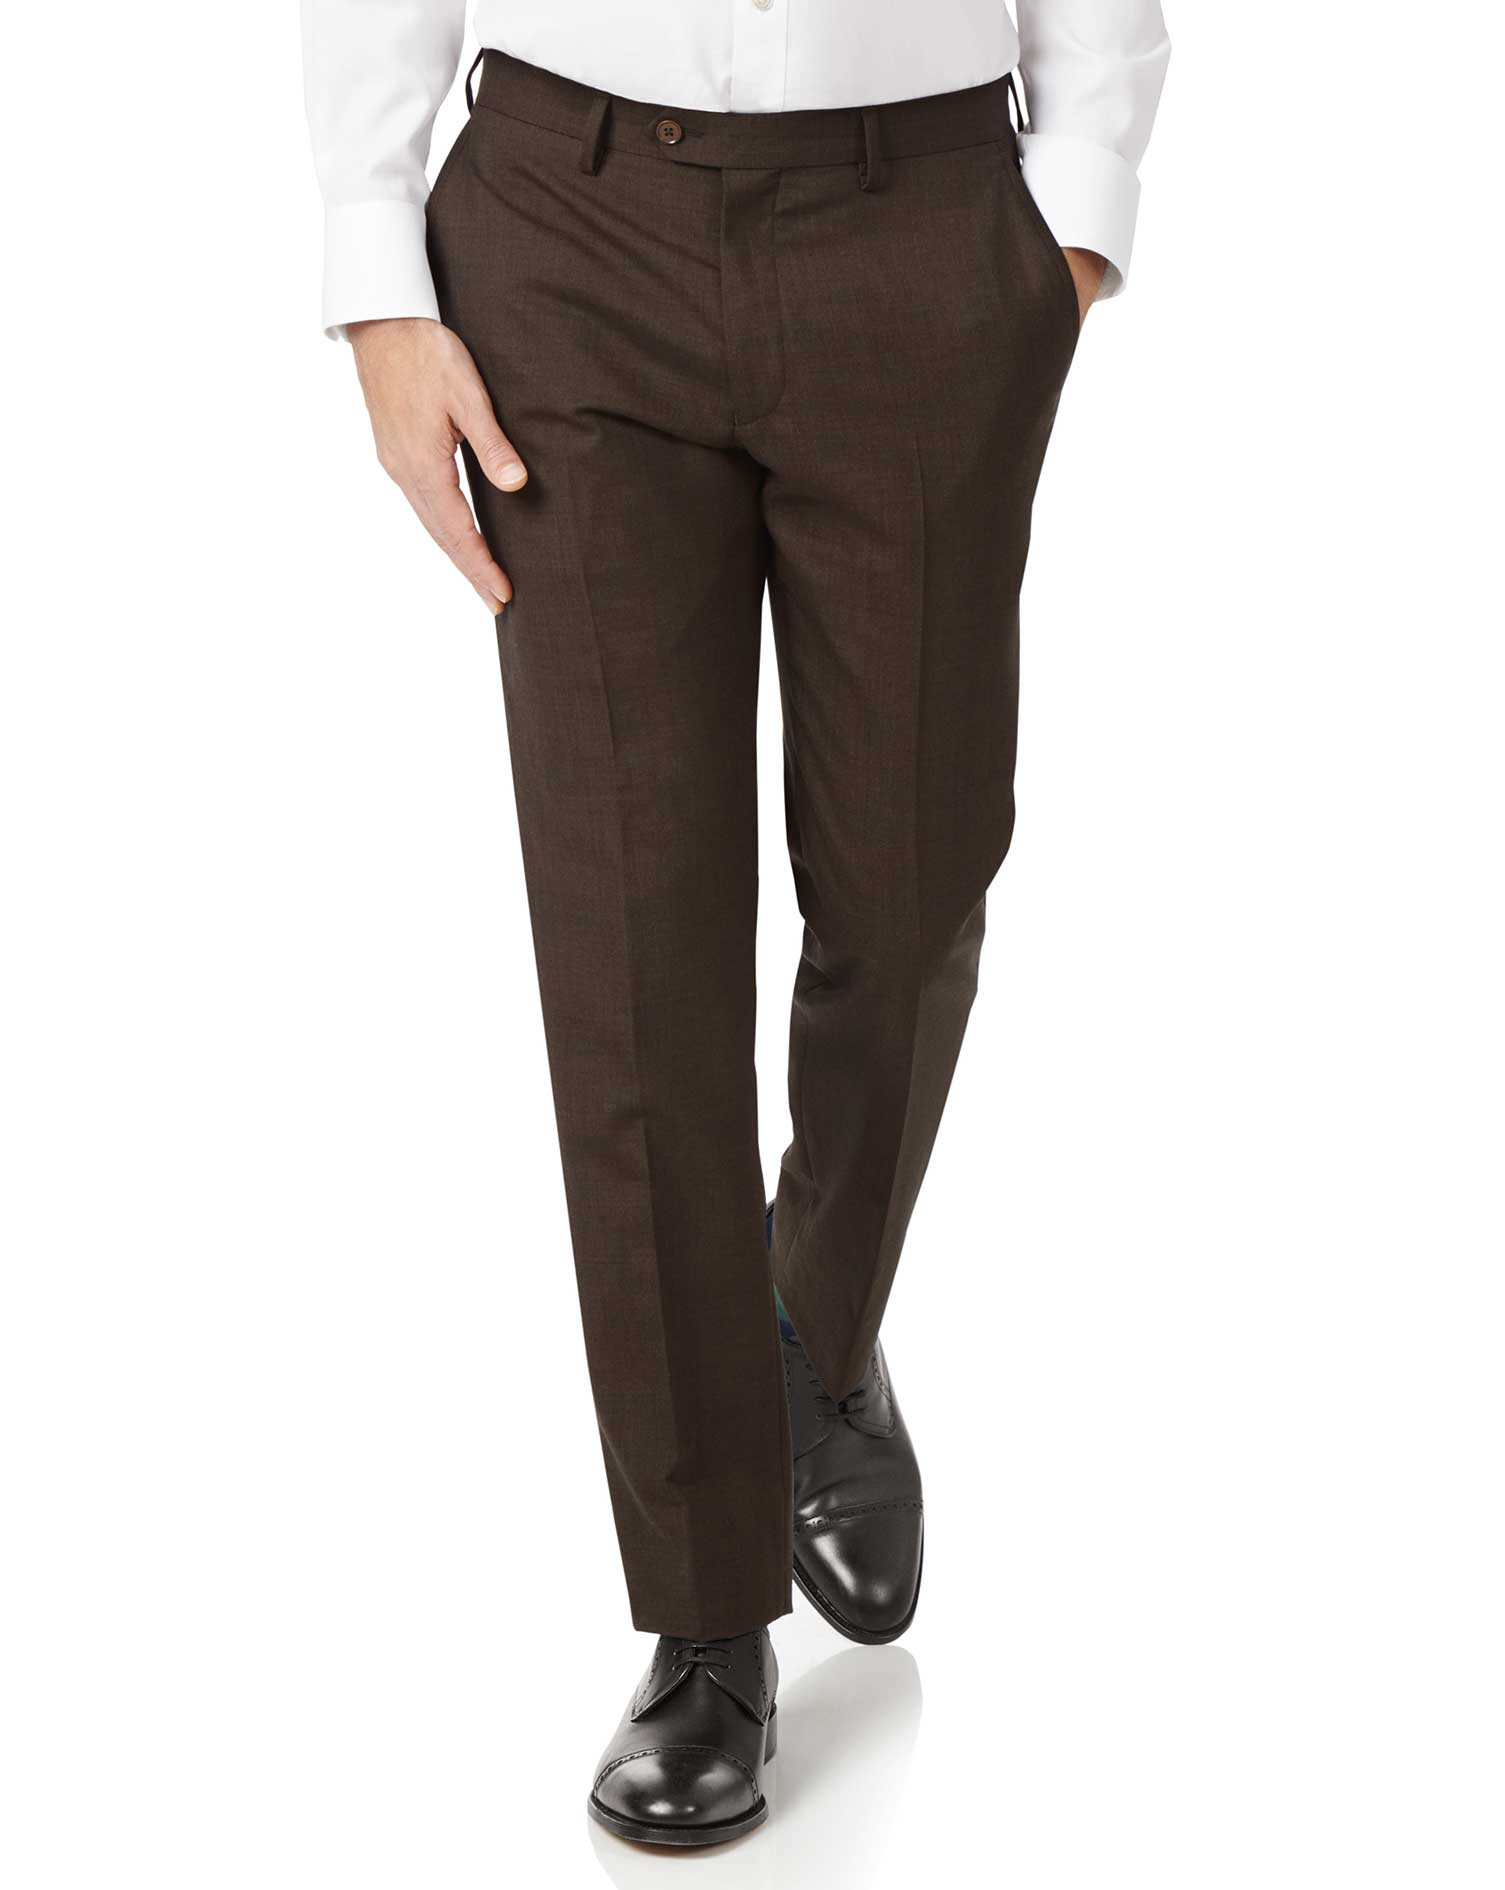 Chocolate Slim Fit Sharkskin Travel Suit Trousers Size W40 L38 by Charles Tyrwhitt